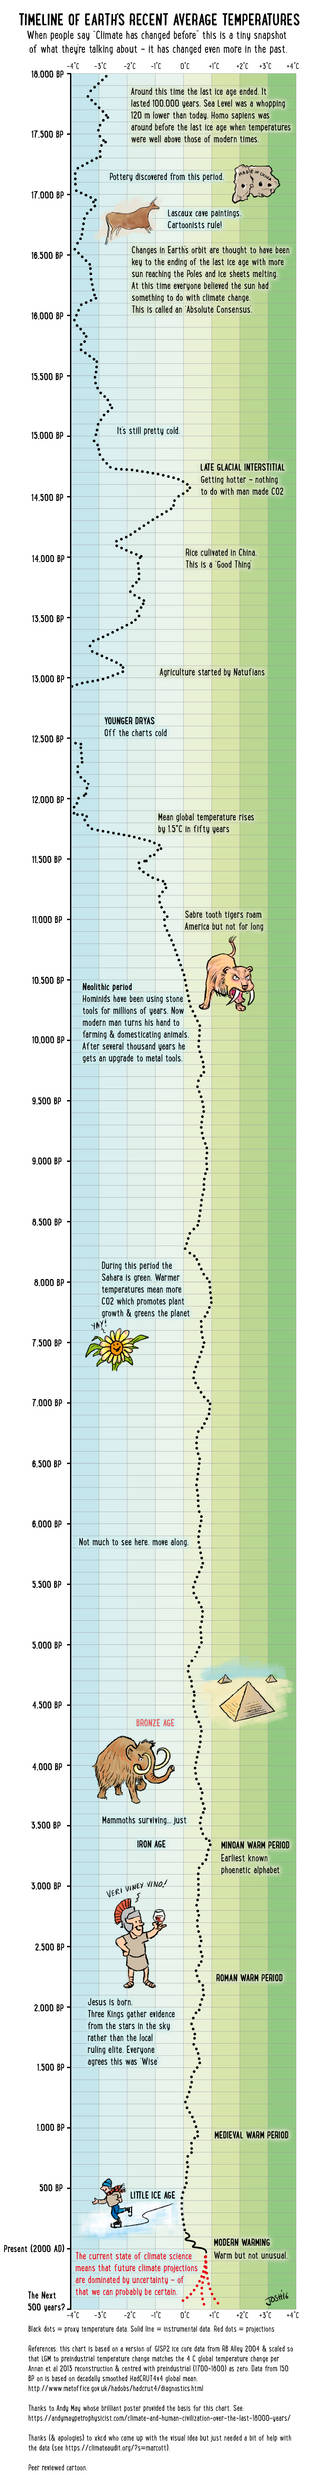 18,000 years of our changing climate